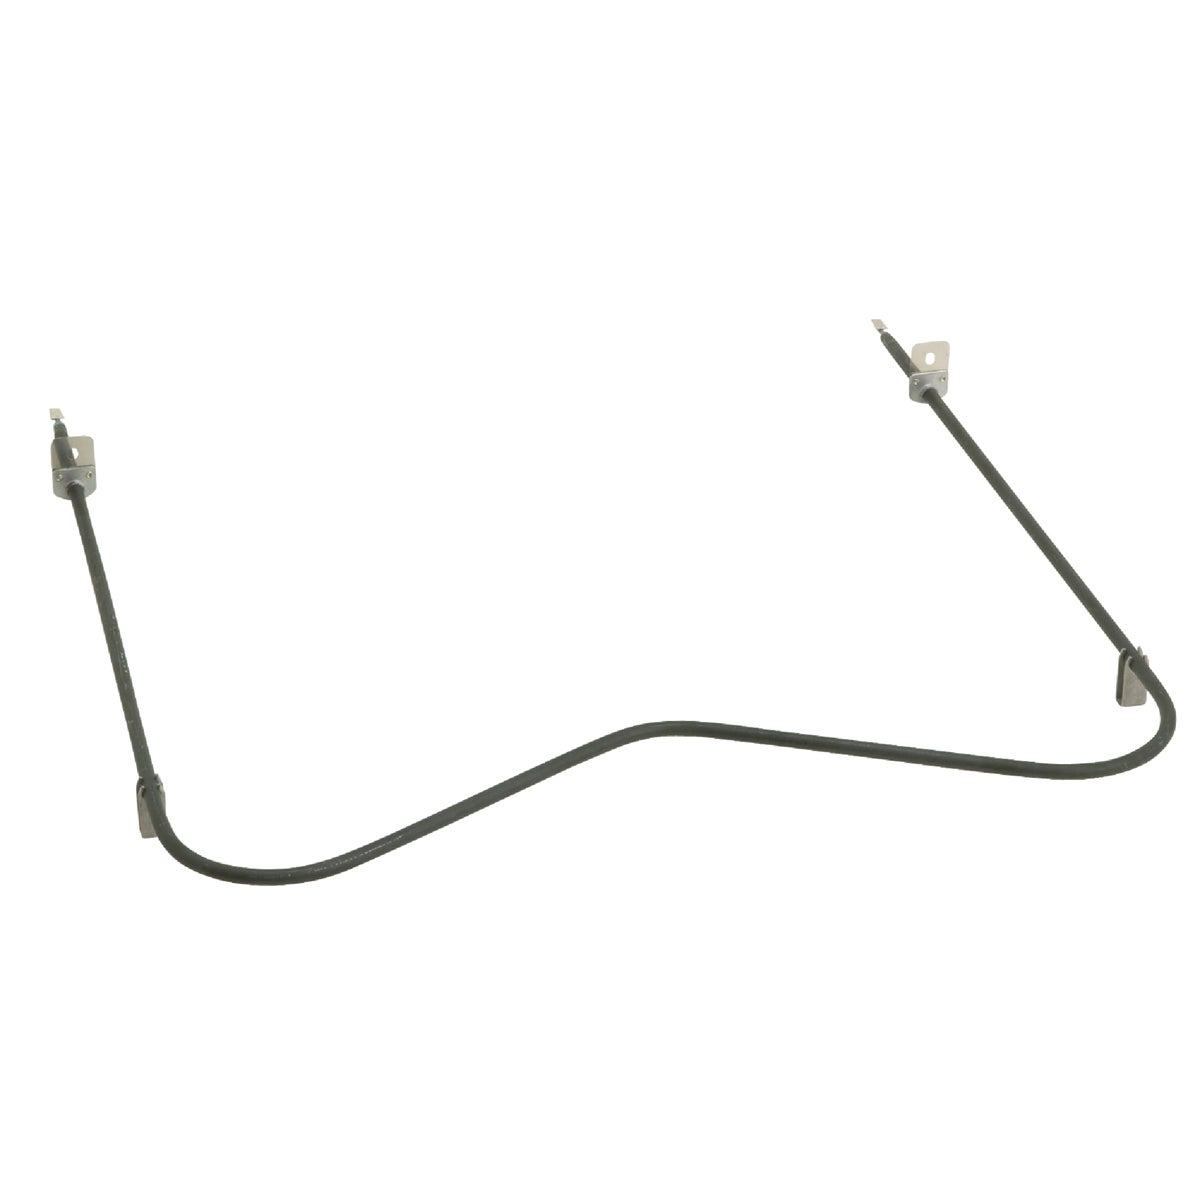 2500W OVEN ELEMENT - 7505 by Range Kleen Mfg Inc